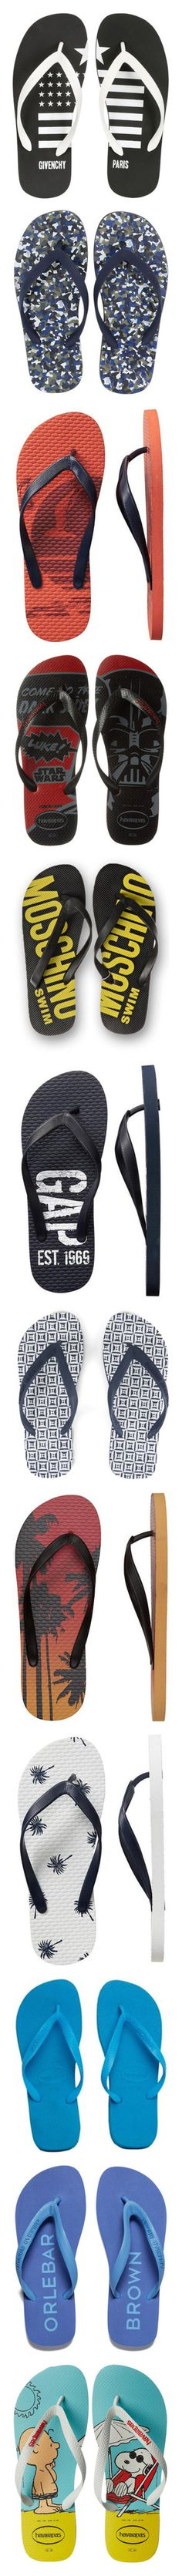 Black sandals gap -  Hawaianas Ojotas De Hombre By Infinito1 Liked On Polyvore Featuring Men S Fashion